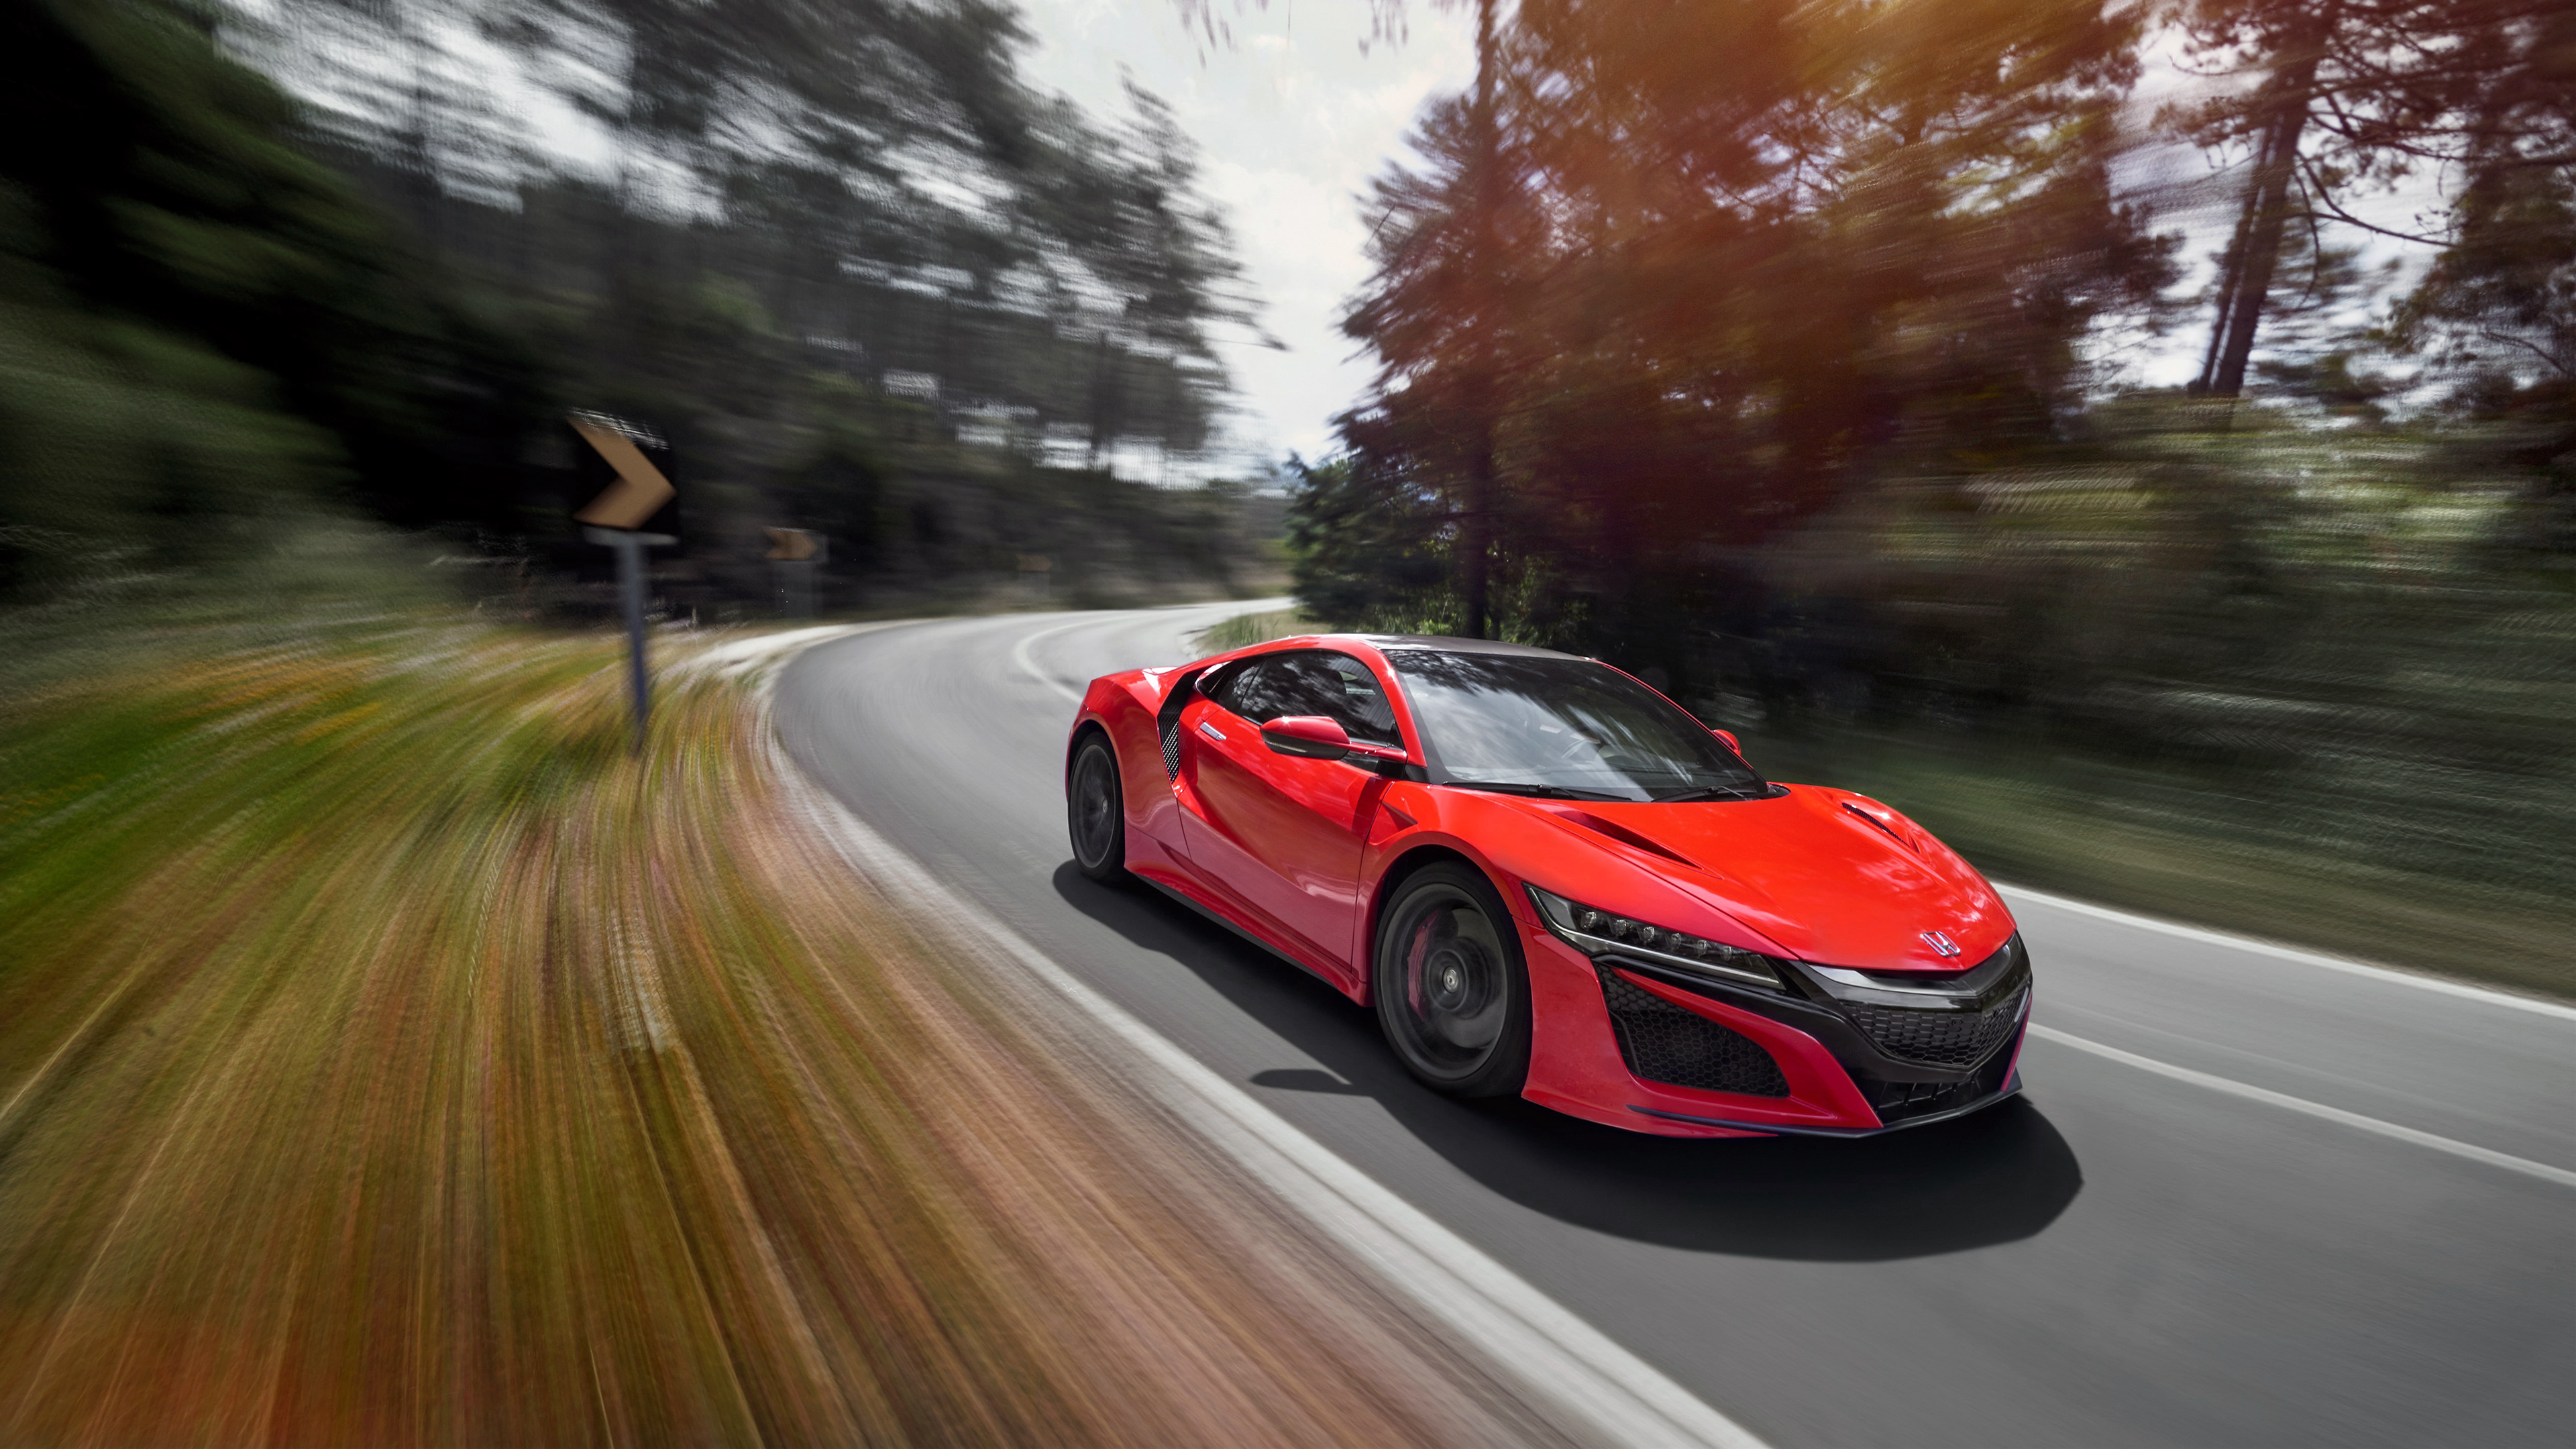 Honda NSX Wallpapers and Background Images   stmednet 3840x2160